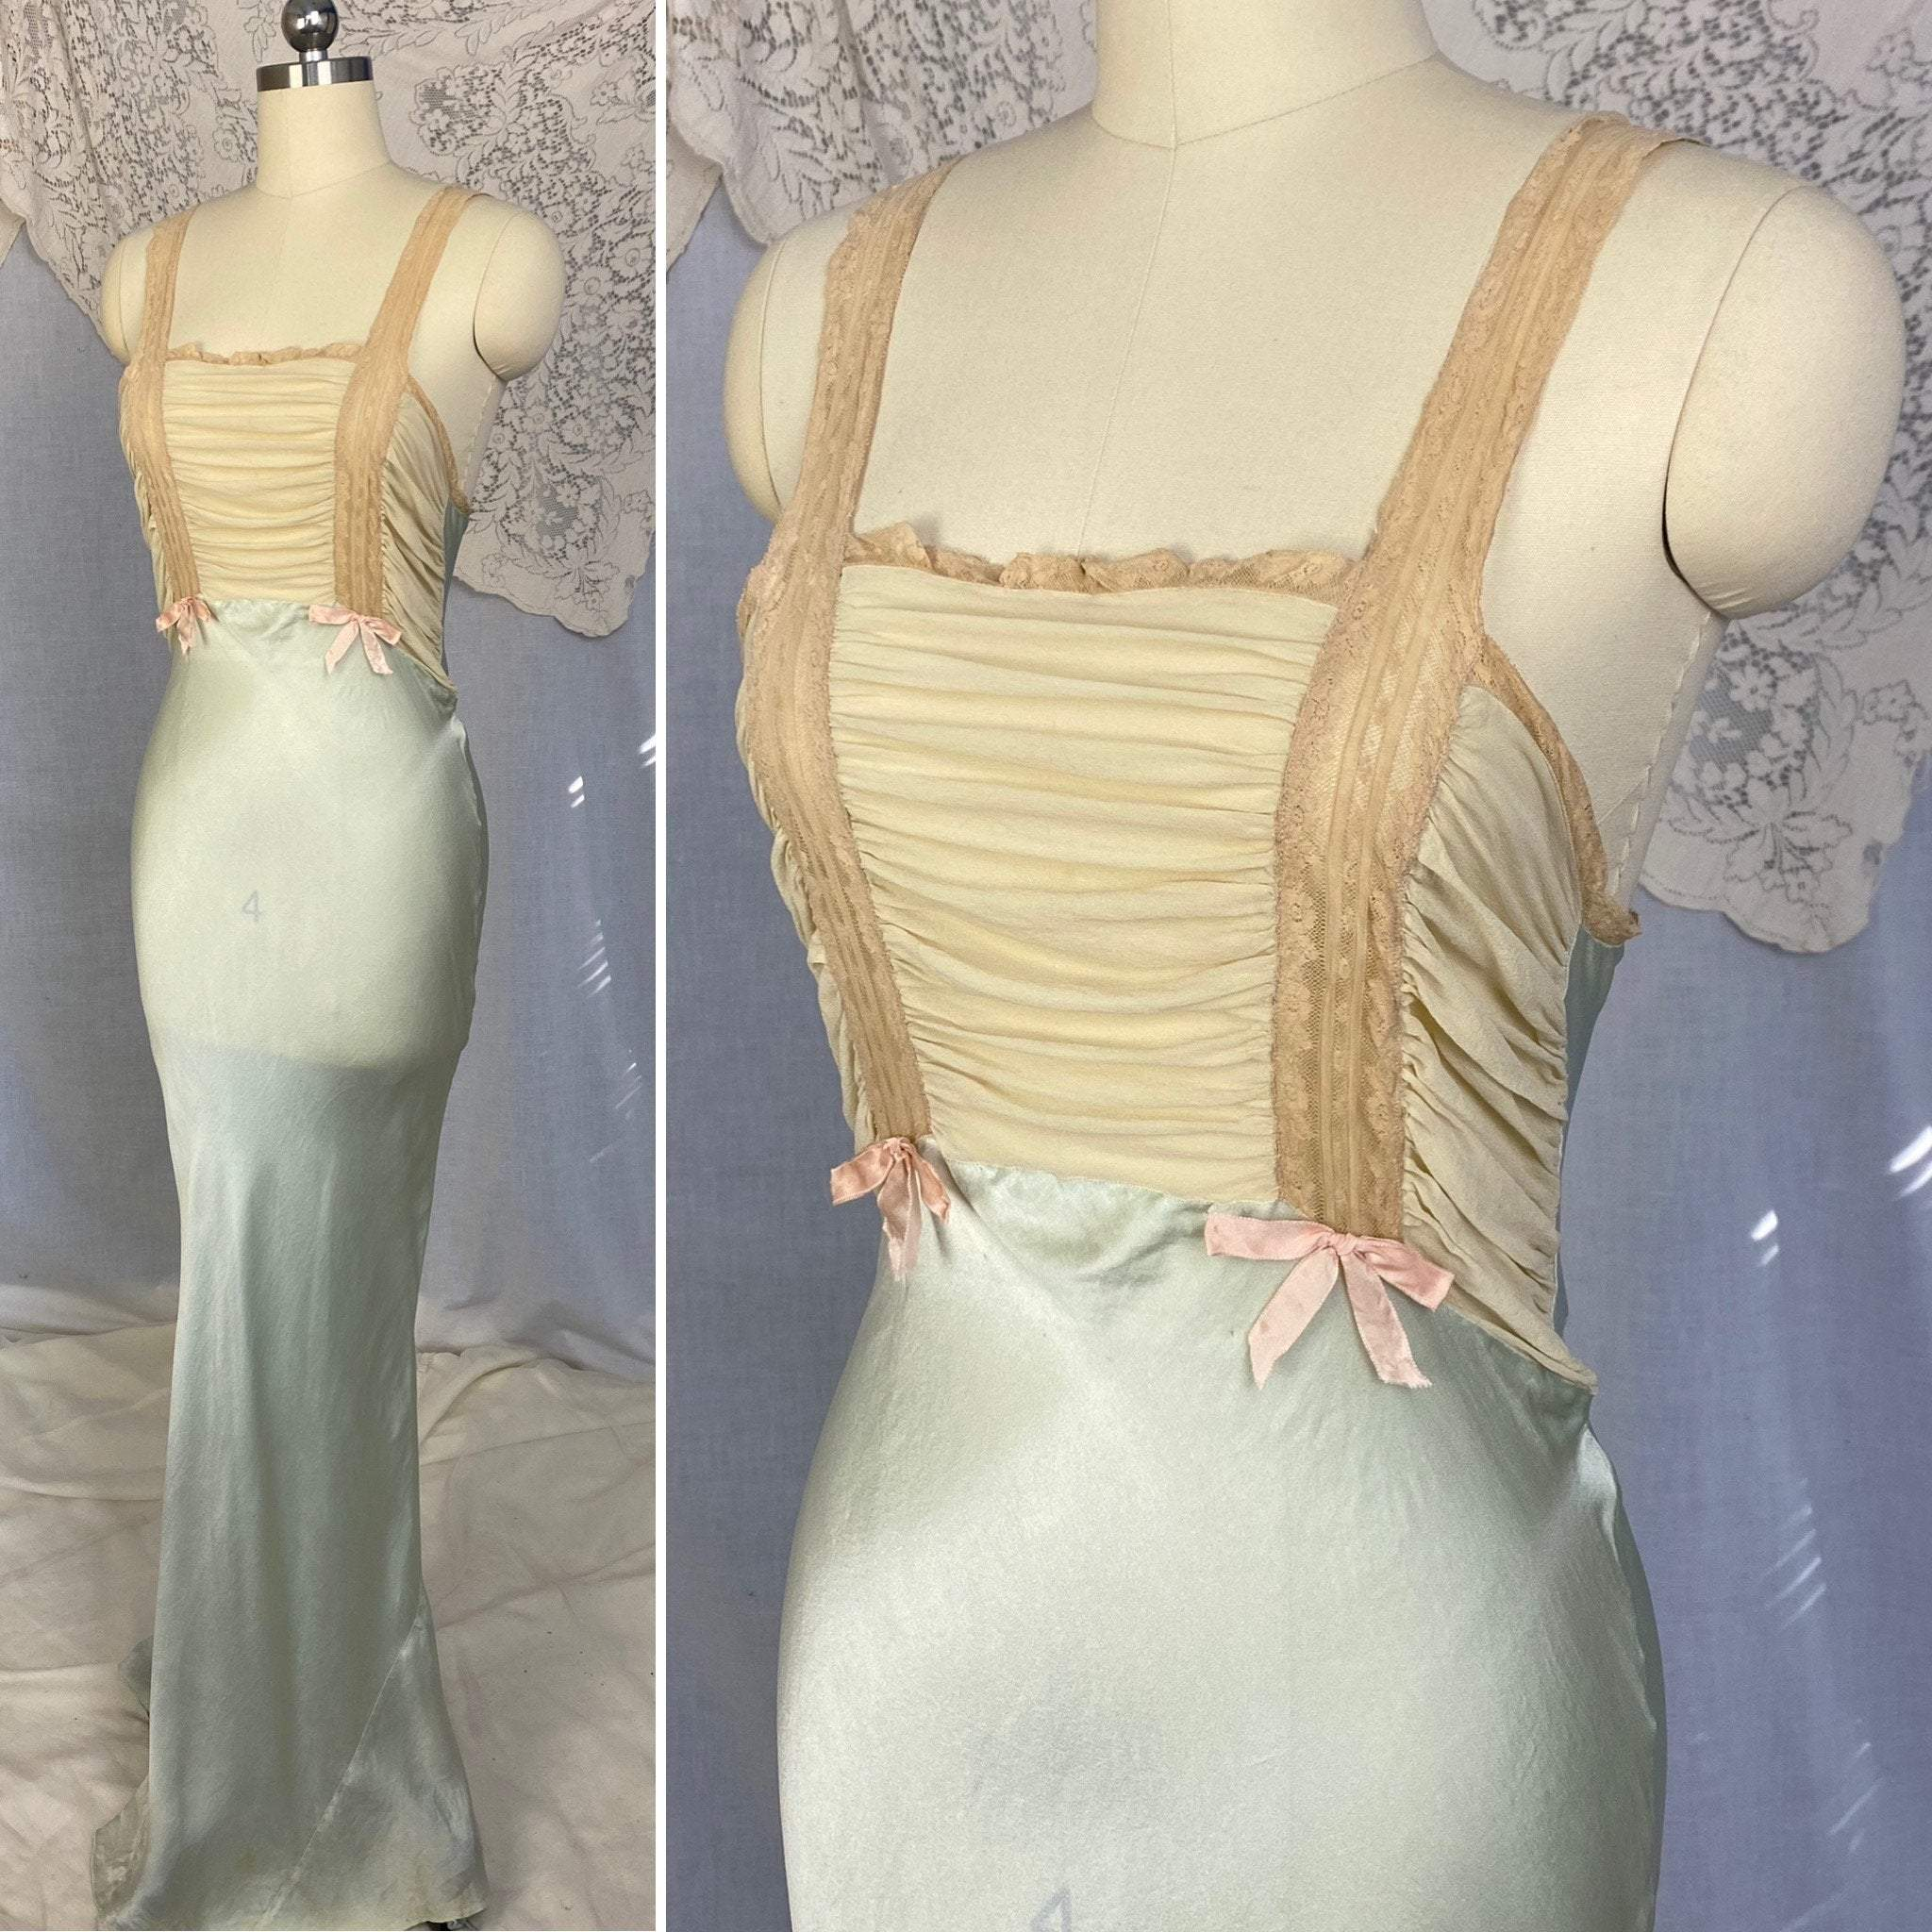 Vintage 1930's Nightgown | Seafoam Green Silk with Ivory Chiffon & Lace | Size 32-33.5 Bust, XS, S | Bullocks of Los Angeles - Daggers & Dames